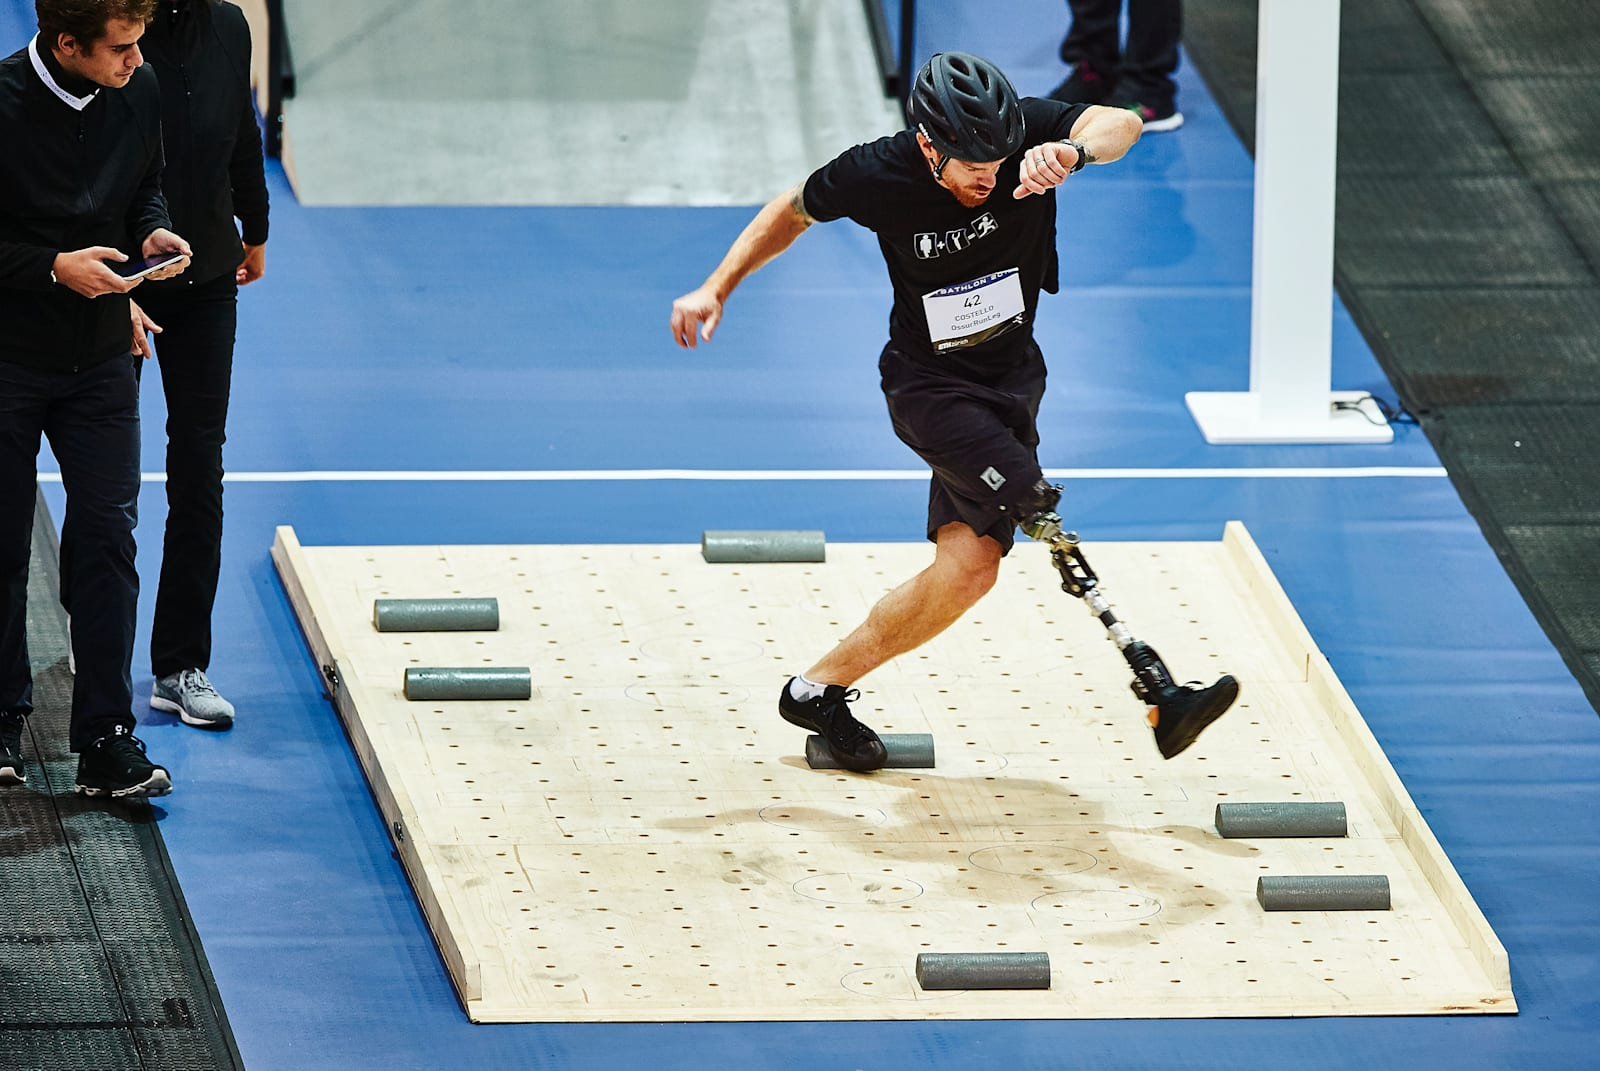 SWITZERLAND-HEALTH-SPORT-DISABLED-TECHNOLOGY